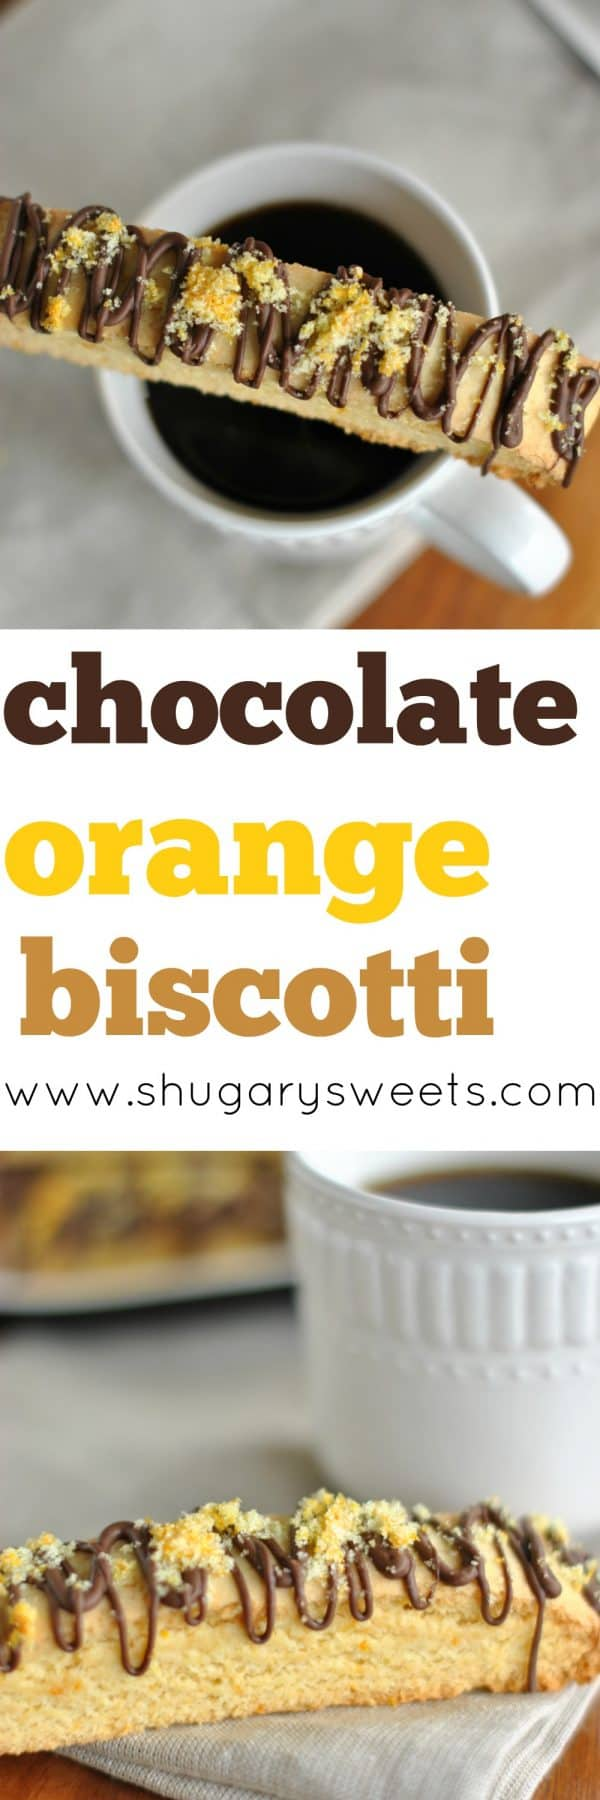 Chocolate Orange Biscotti recipe. Packed with flavor and perfect in a hot cup of coffee